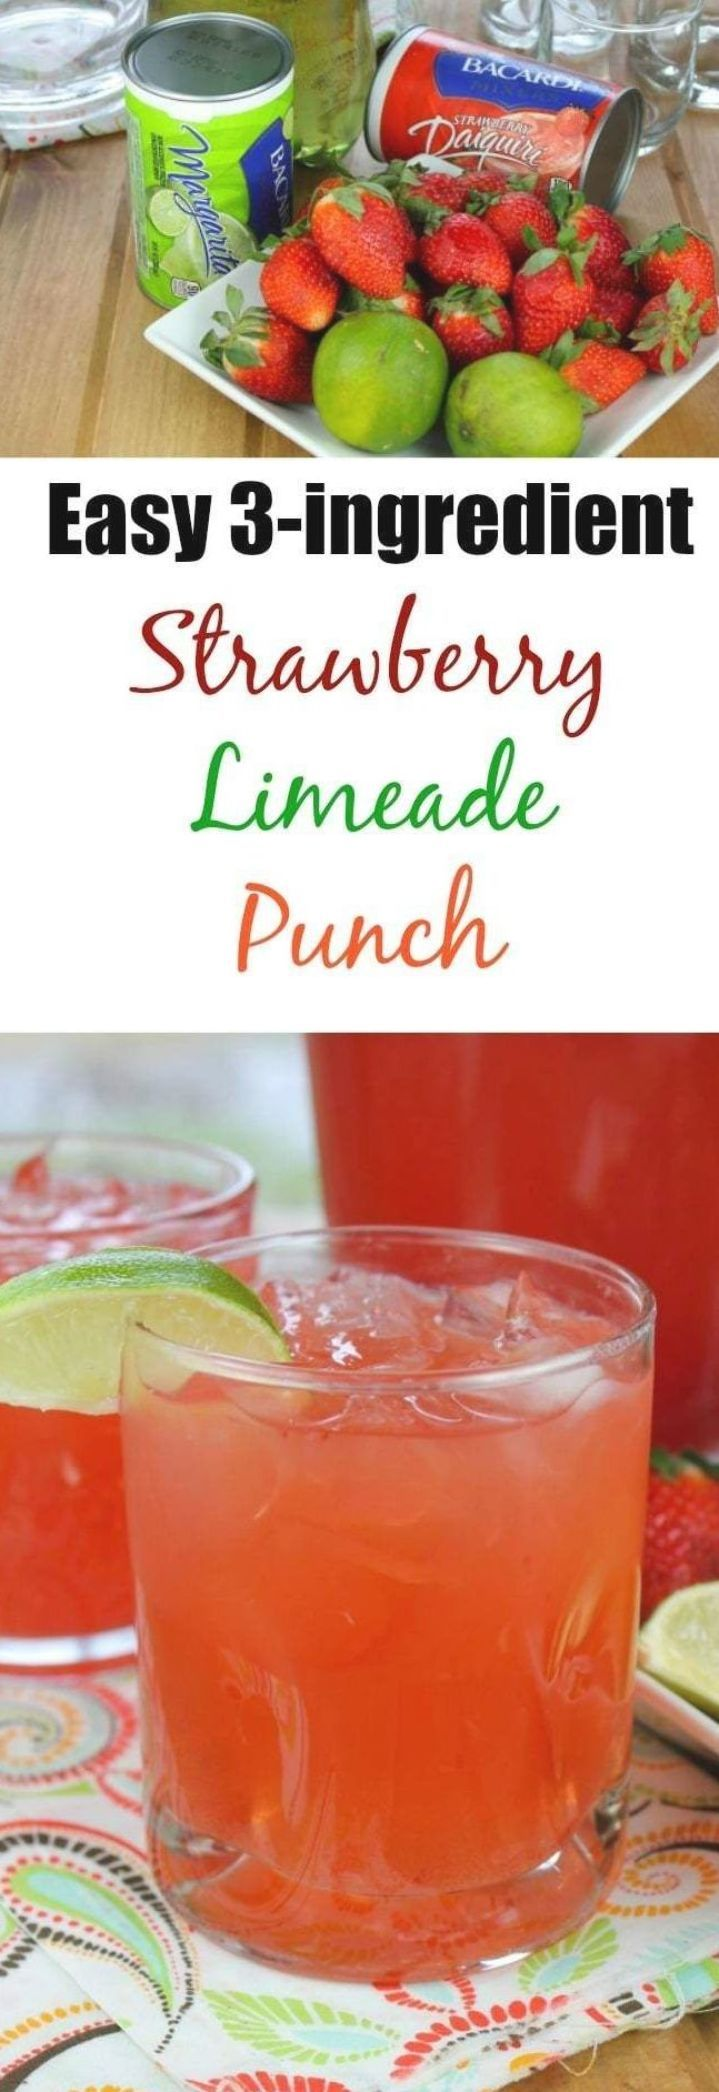 Easy Strawberry Limeade Punch Is Incredibly Easy And A Delicious Family Friendly Party Punch T In 2020 Easy Fruity Cocktails Limeade Punch Recipe Easy Alcoholic Drinks